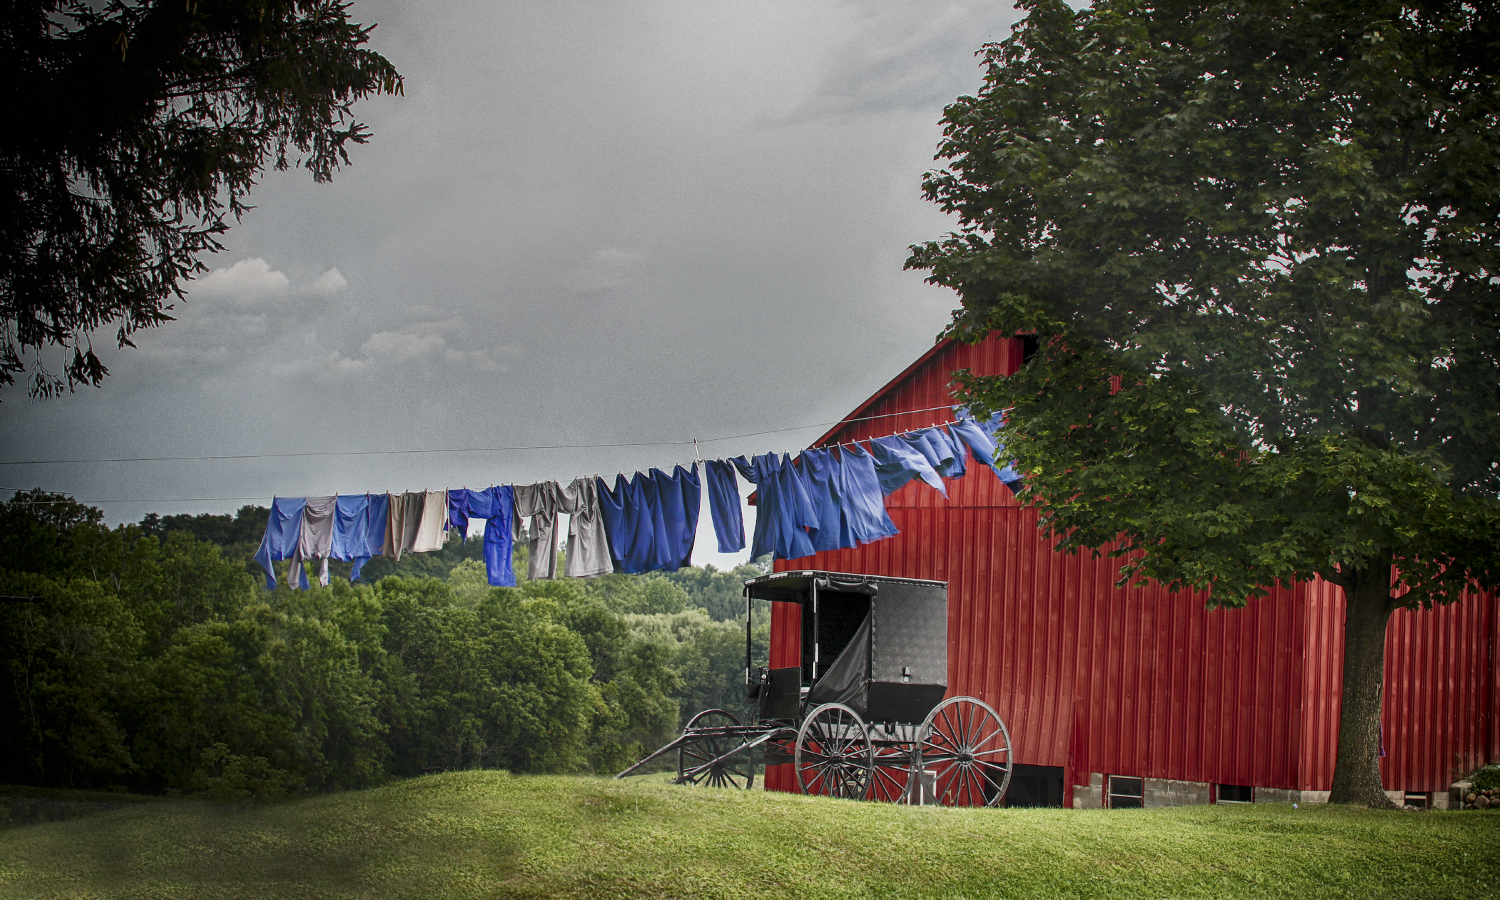 A clothesline blows in the wind on a farm in Lyons, N.Y.